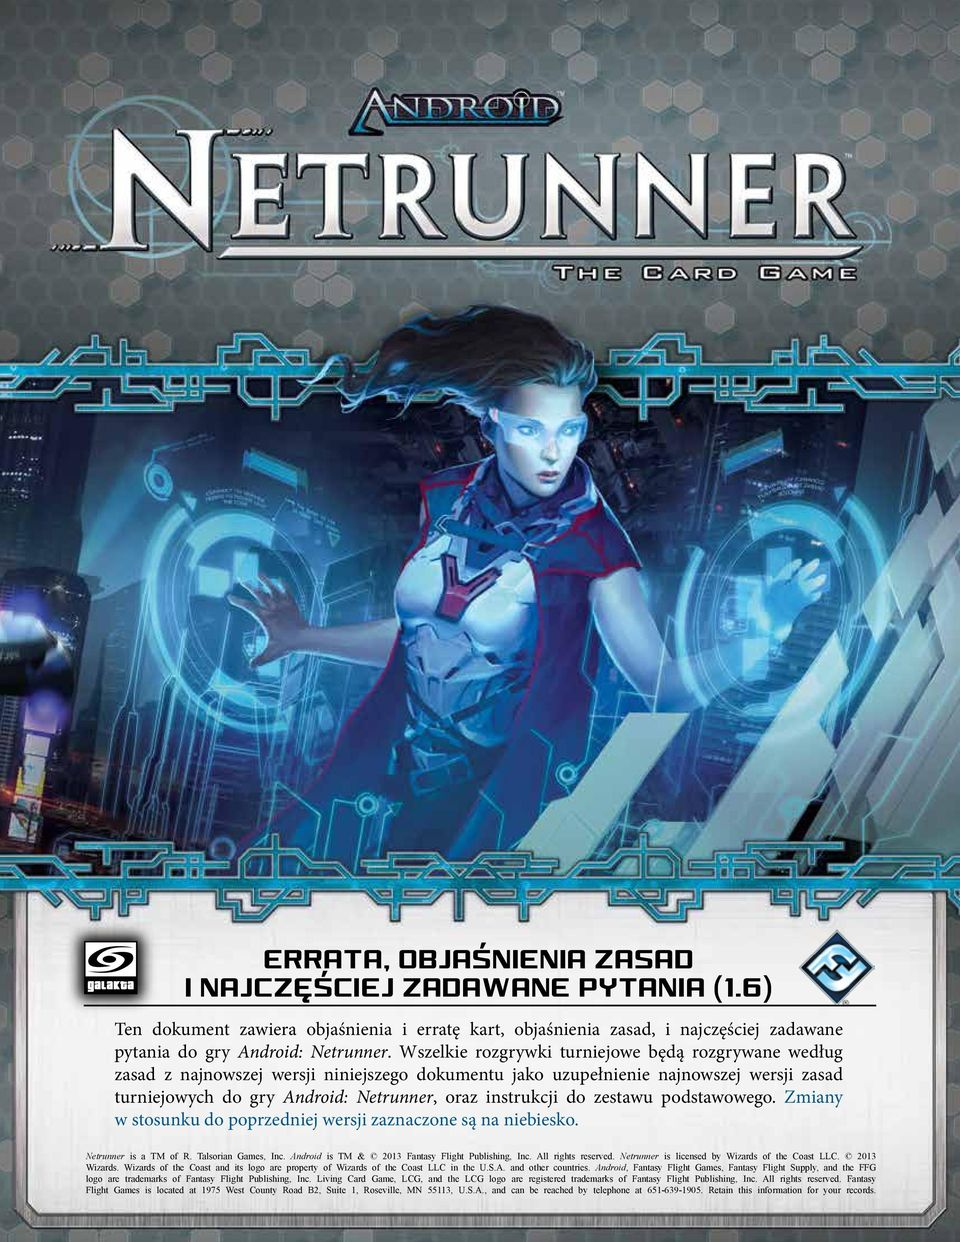 do zestawu podstawowego. Zmiany w stosunku do poprzedniej wersji zaznaczone są na niebiesko. Netrunner is a TM of R. Talsorian Games, Inc. Android is TM & 2013 Fantasy Flight Publishing, Inc.